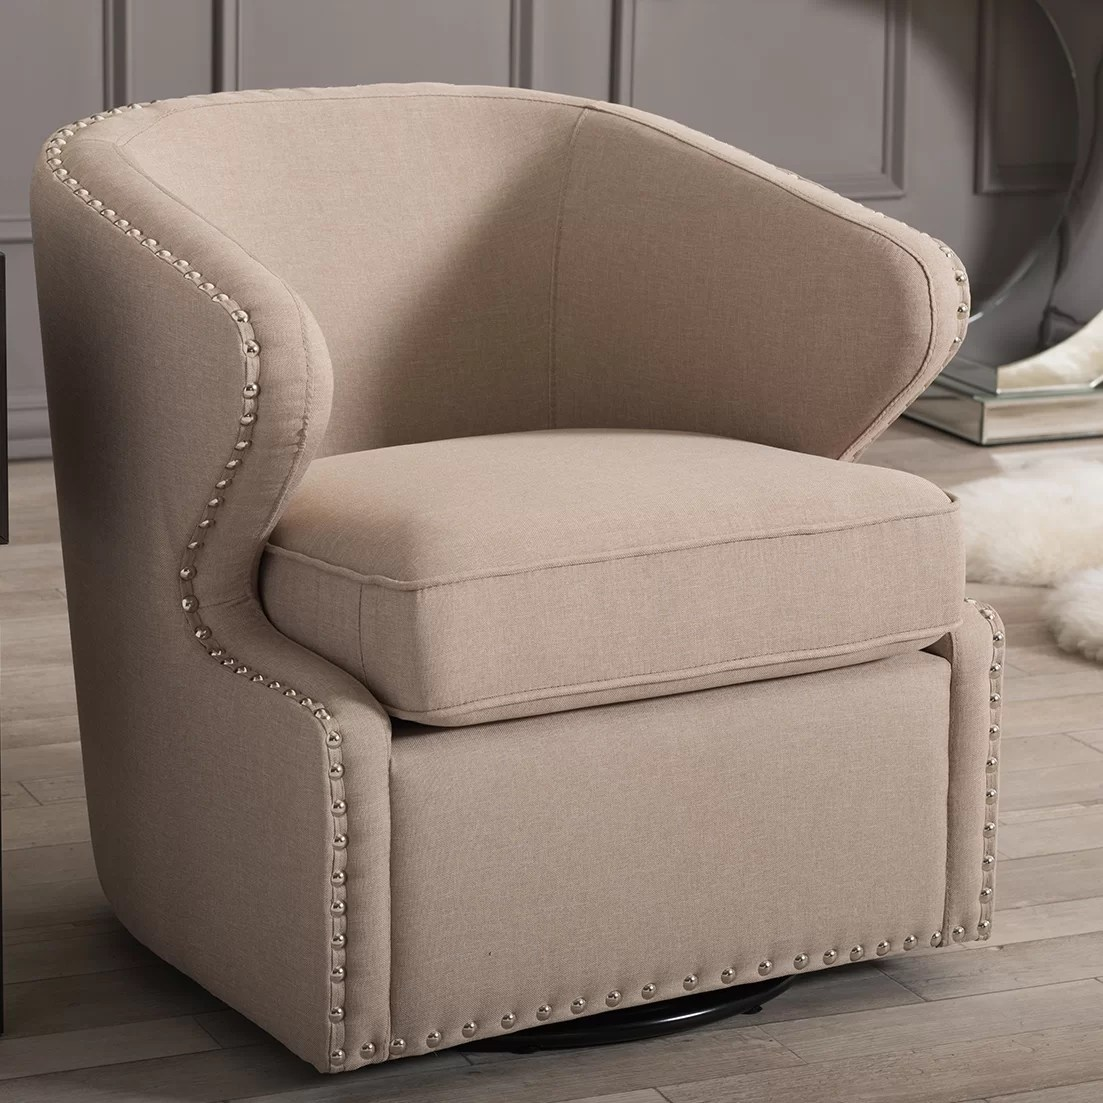 Upholstered Arm Chairs Latitude Run Microscopium Upholstered Swivel Wingback Arm